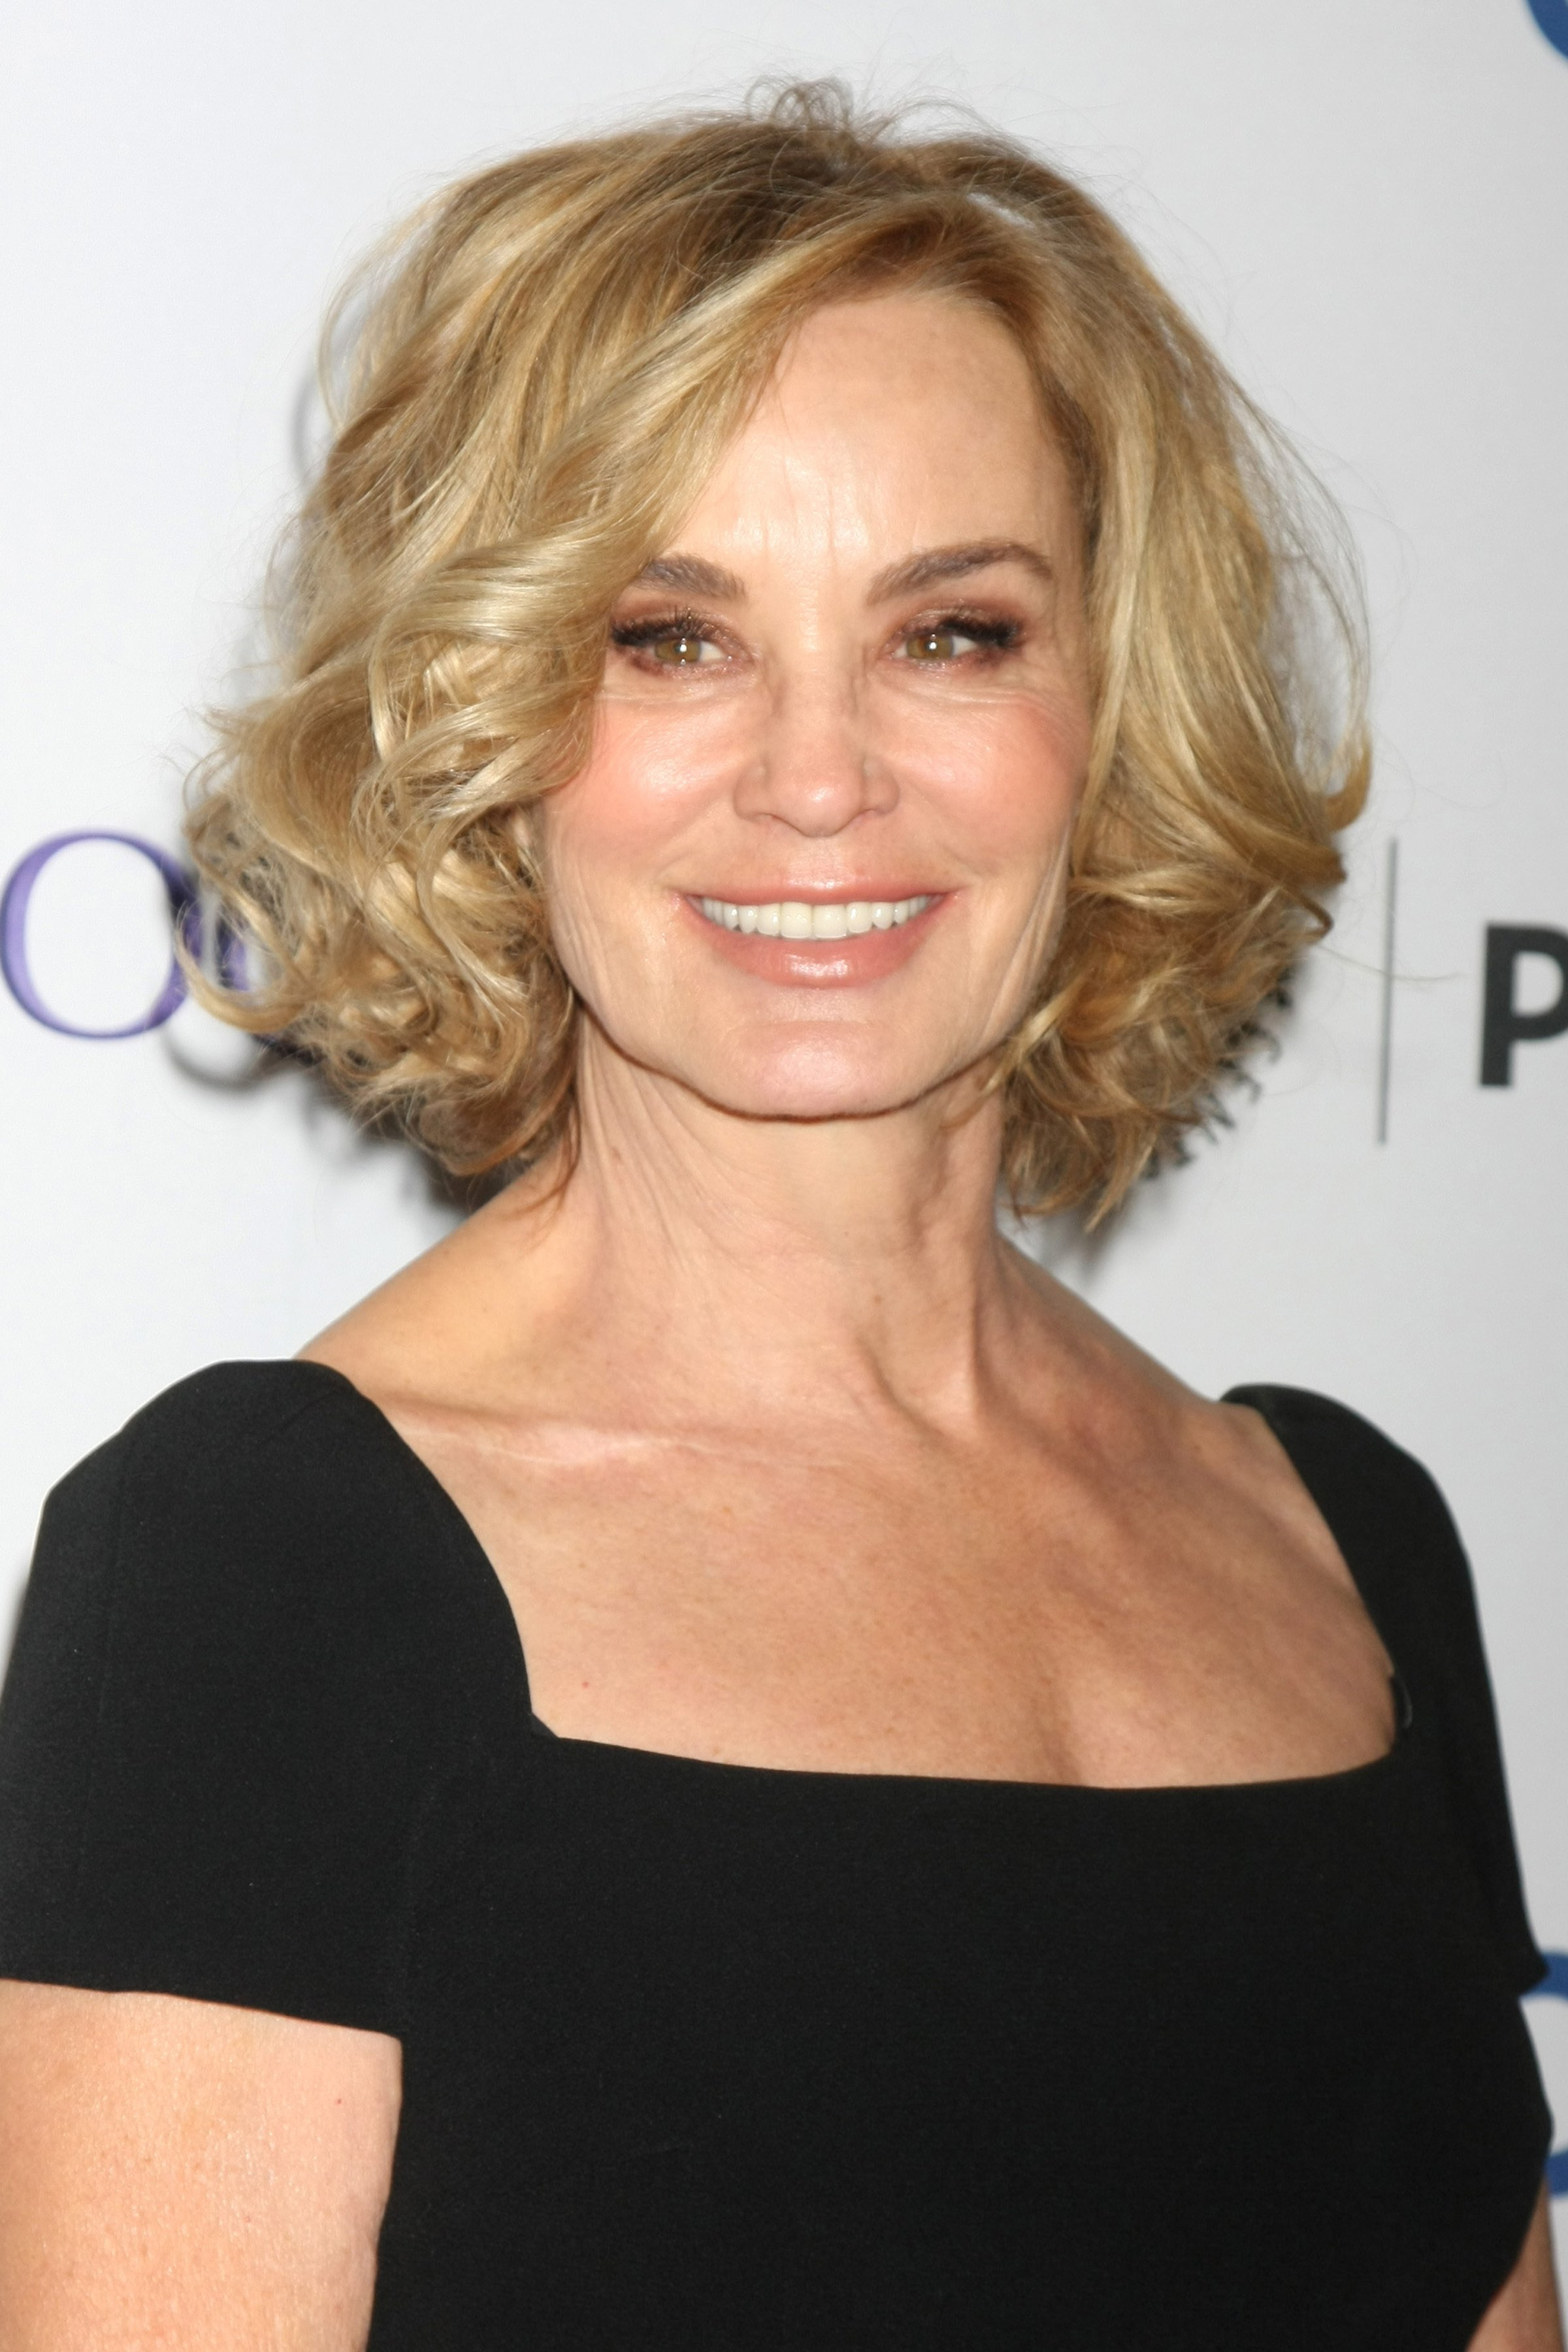 Jessica Lange at the PaleyFEST LA 2015 at the Dolby Theater on March 15, 2015 in Los Angeles, California   Photo: Shutterstock